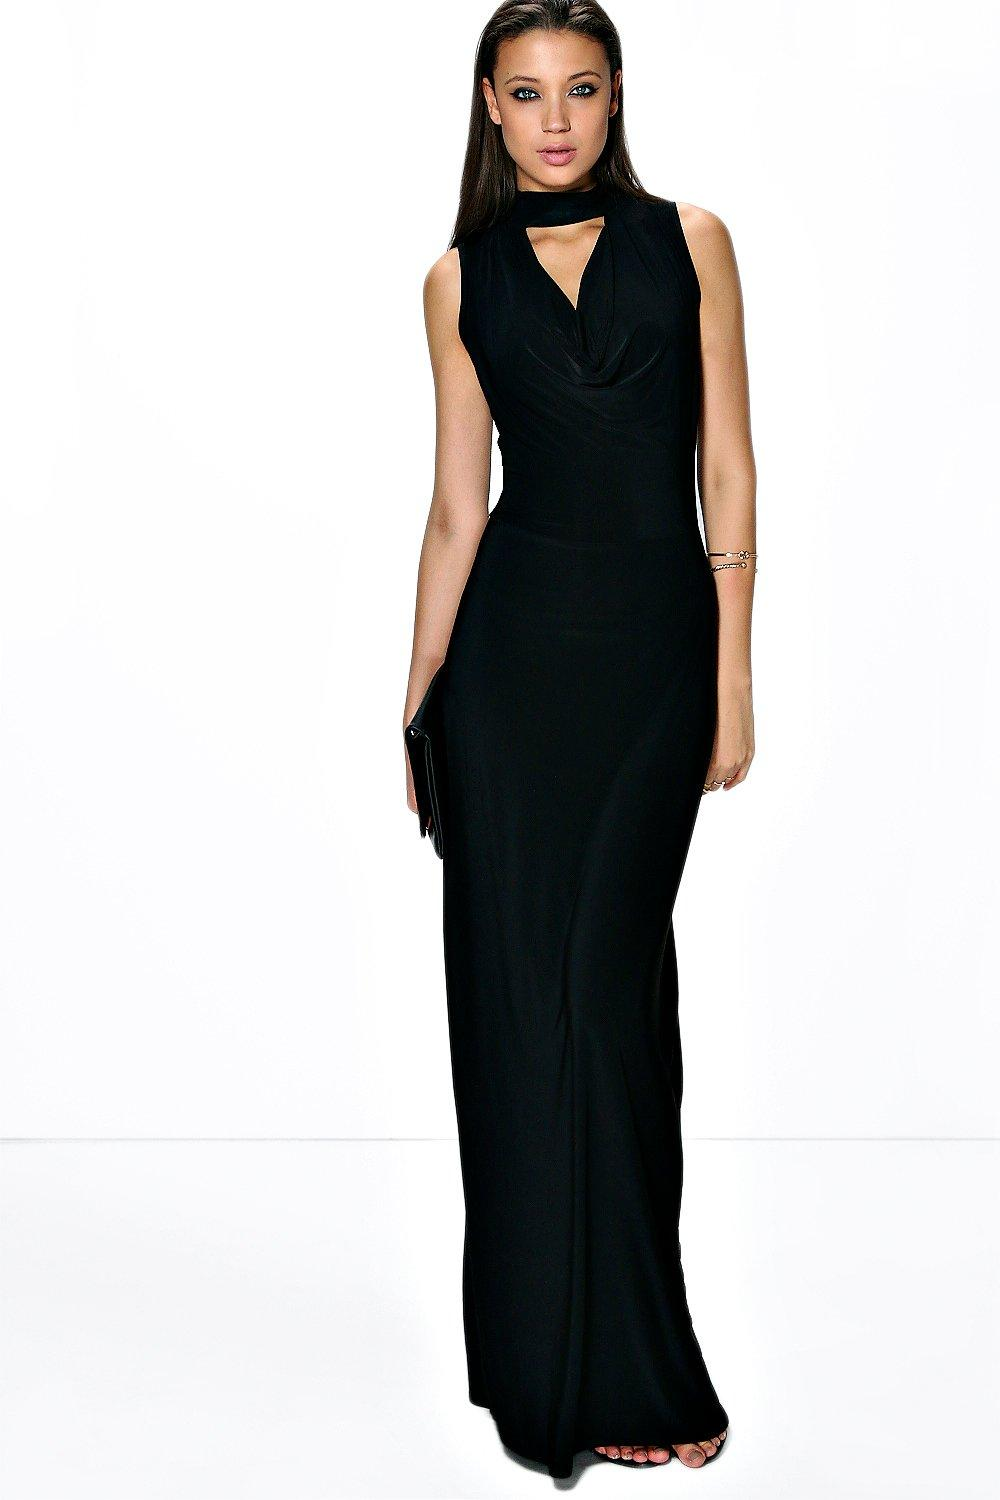 Tall Flo High Open Neck Maxi Dress at boohoo.com